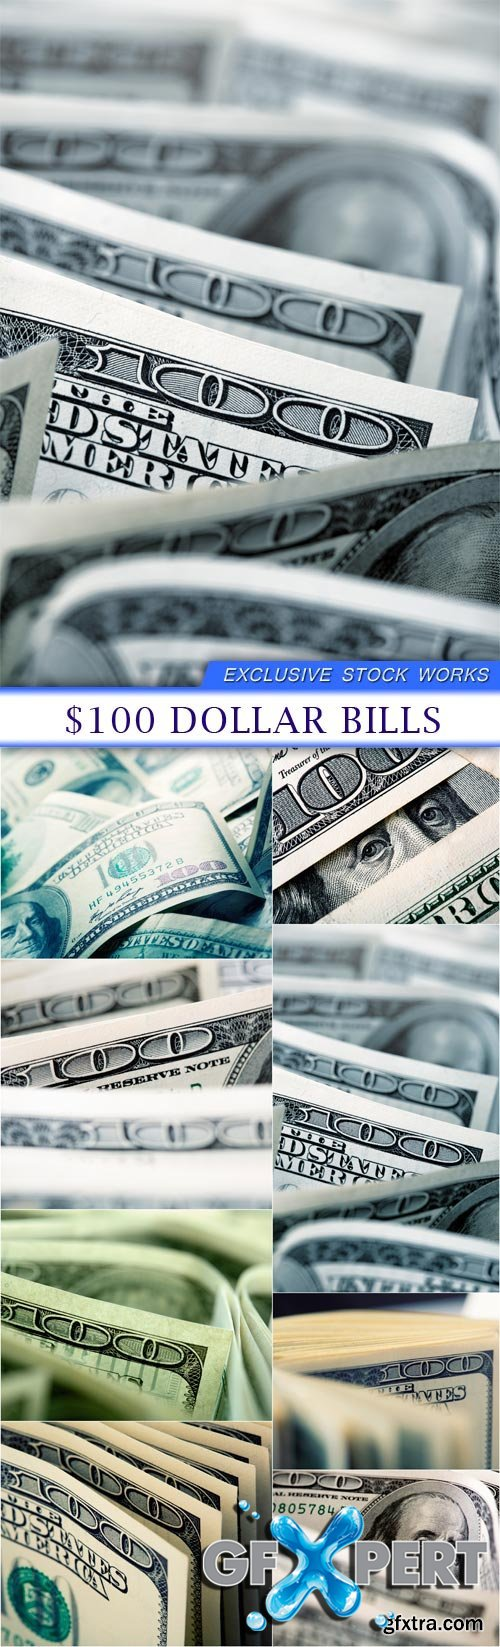 $100 dollar bills 8X JPEG